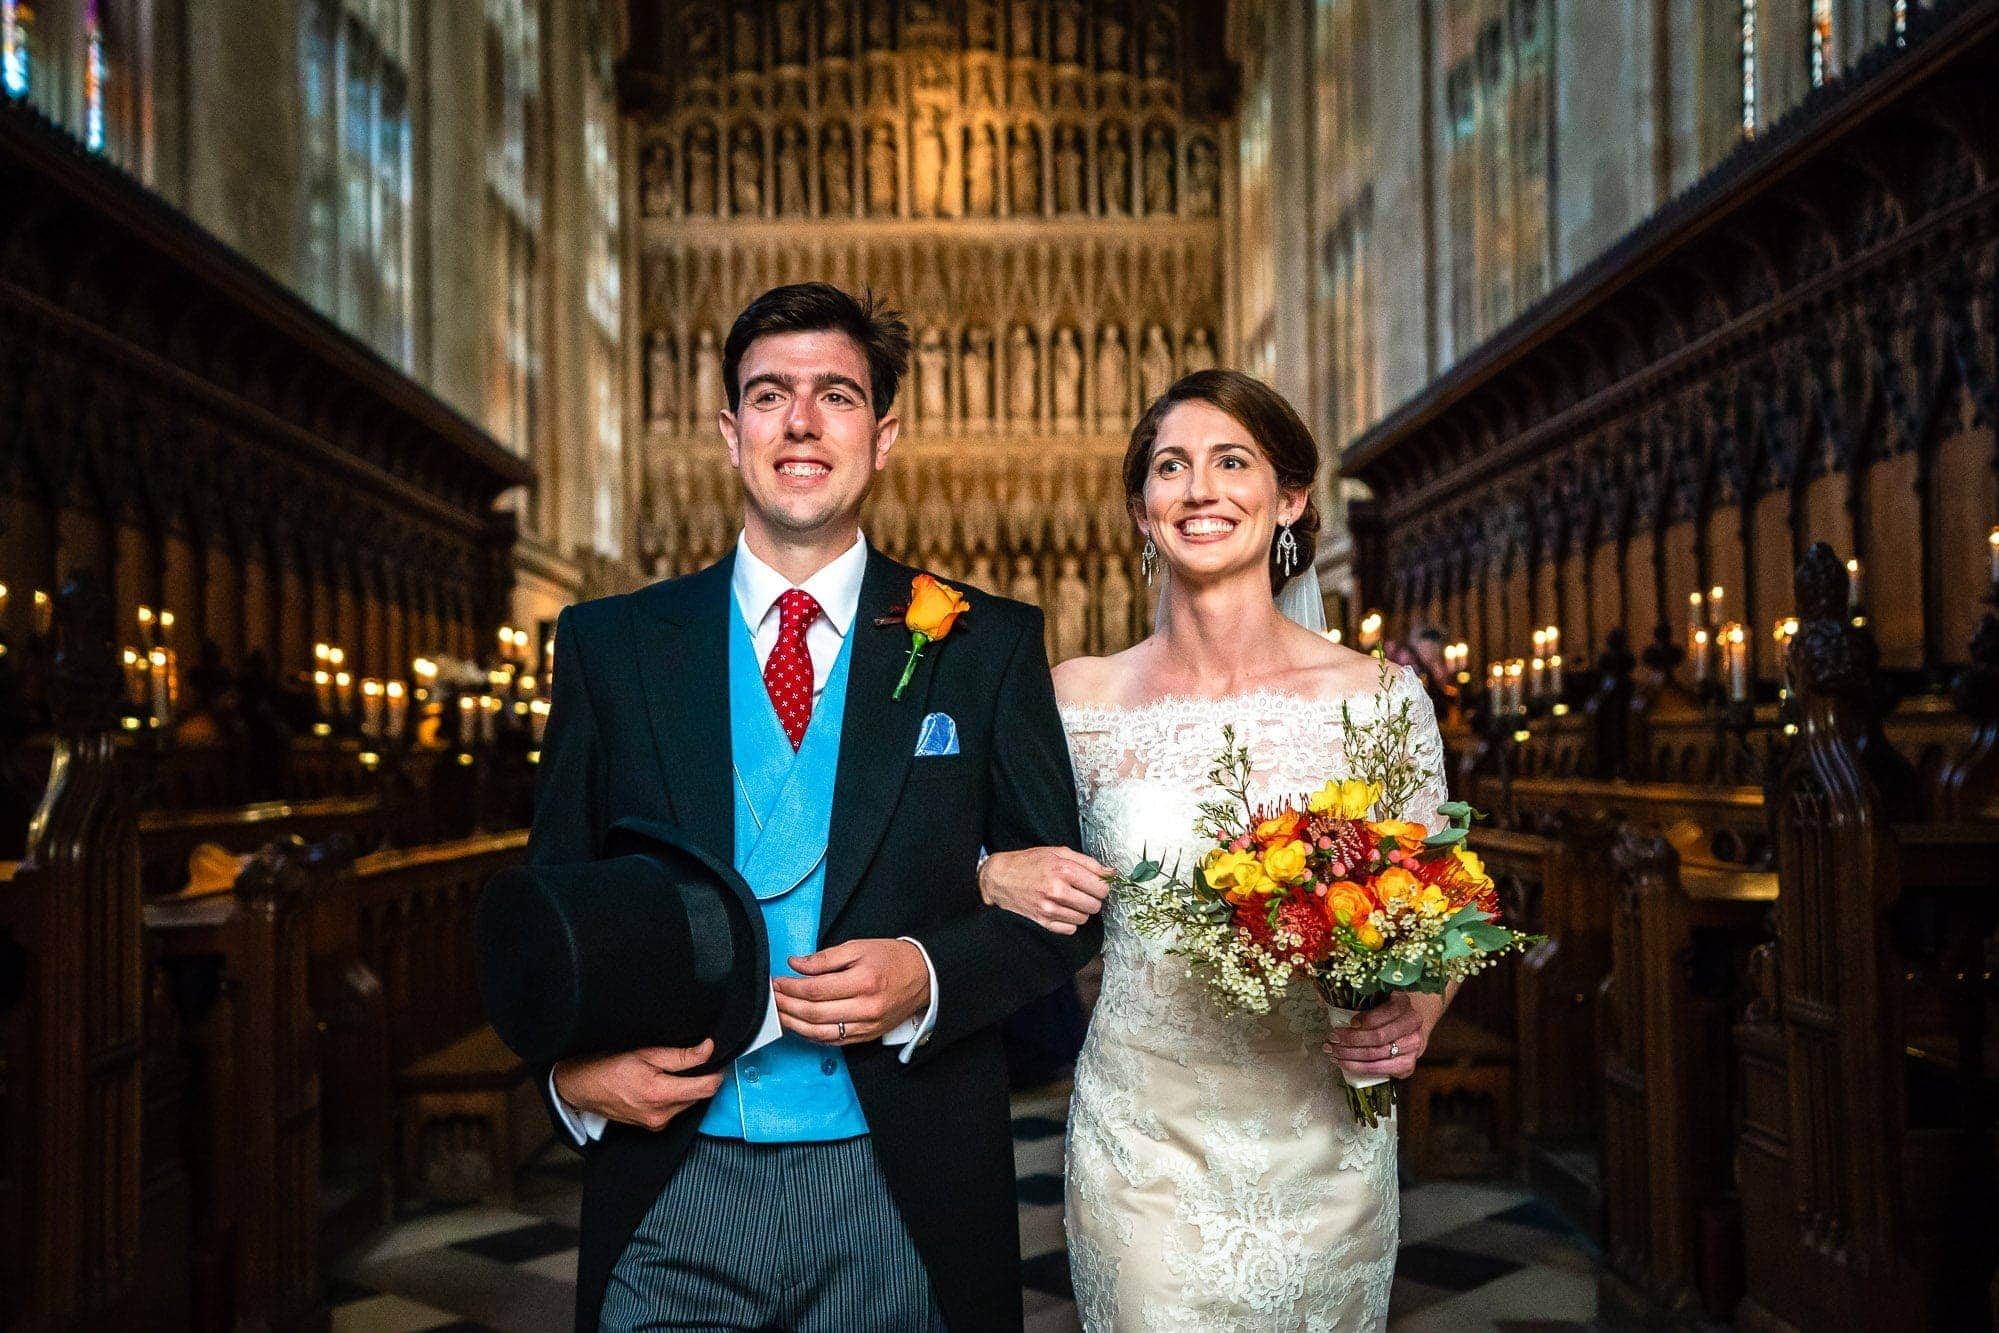 New College Chapel Oxford Wedding - Bride and Groom leaving the chapel